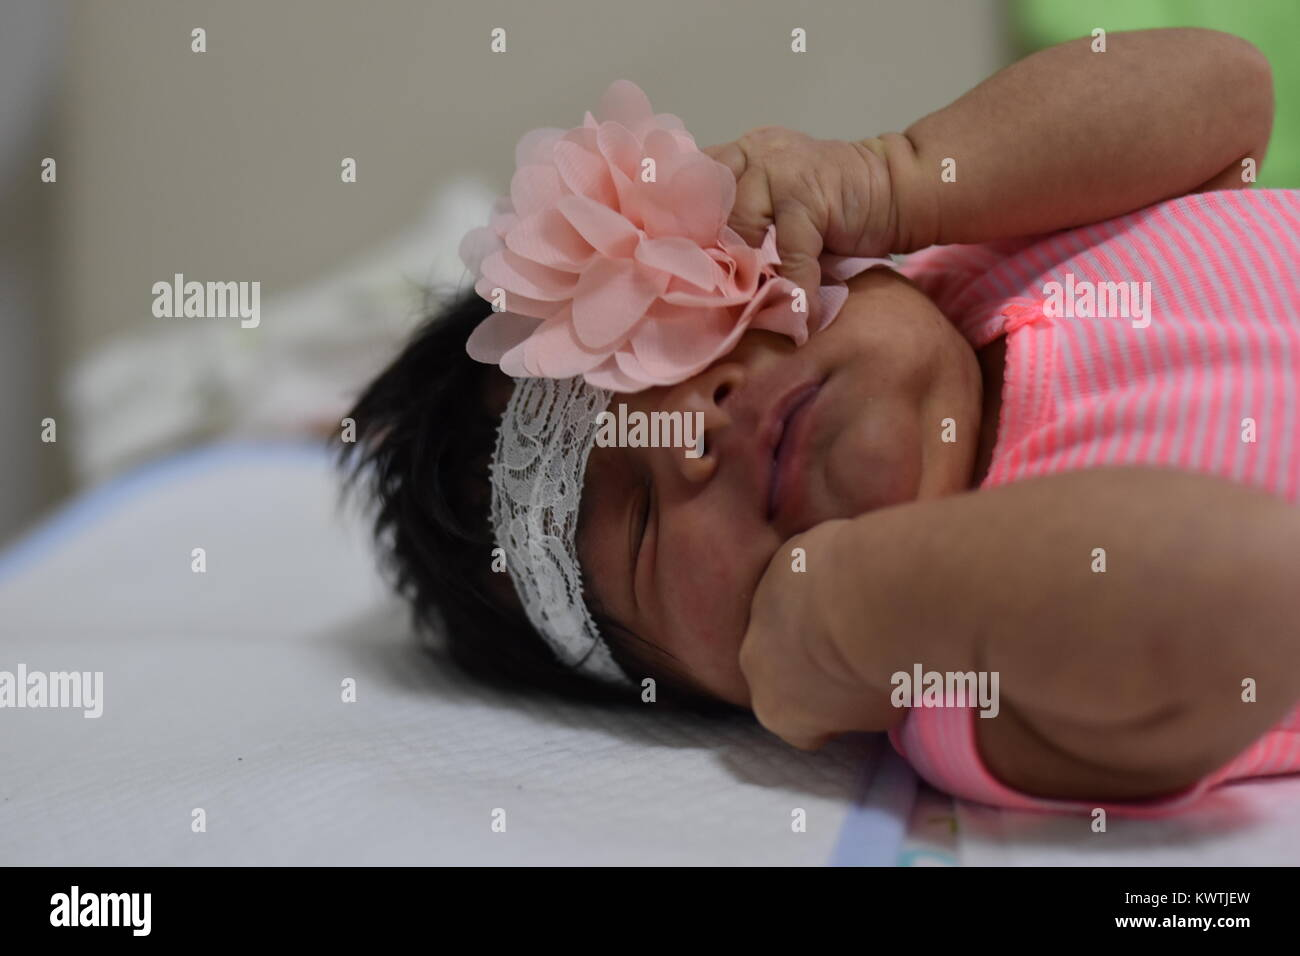 Dark skinned newborn baby girl in pink clothes laying down with eyes closed - Stock Image